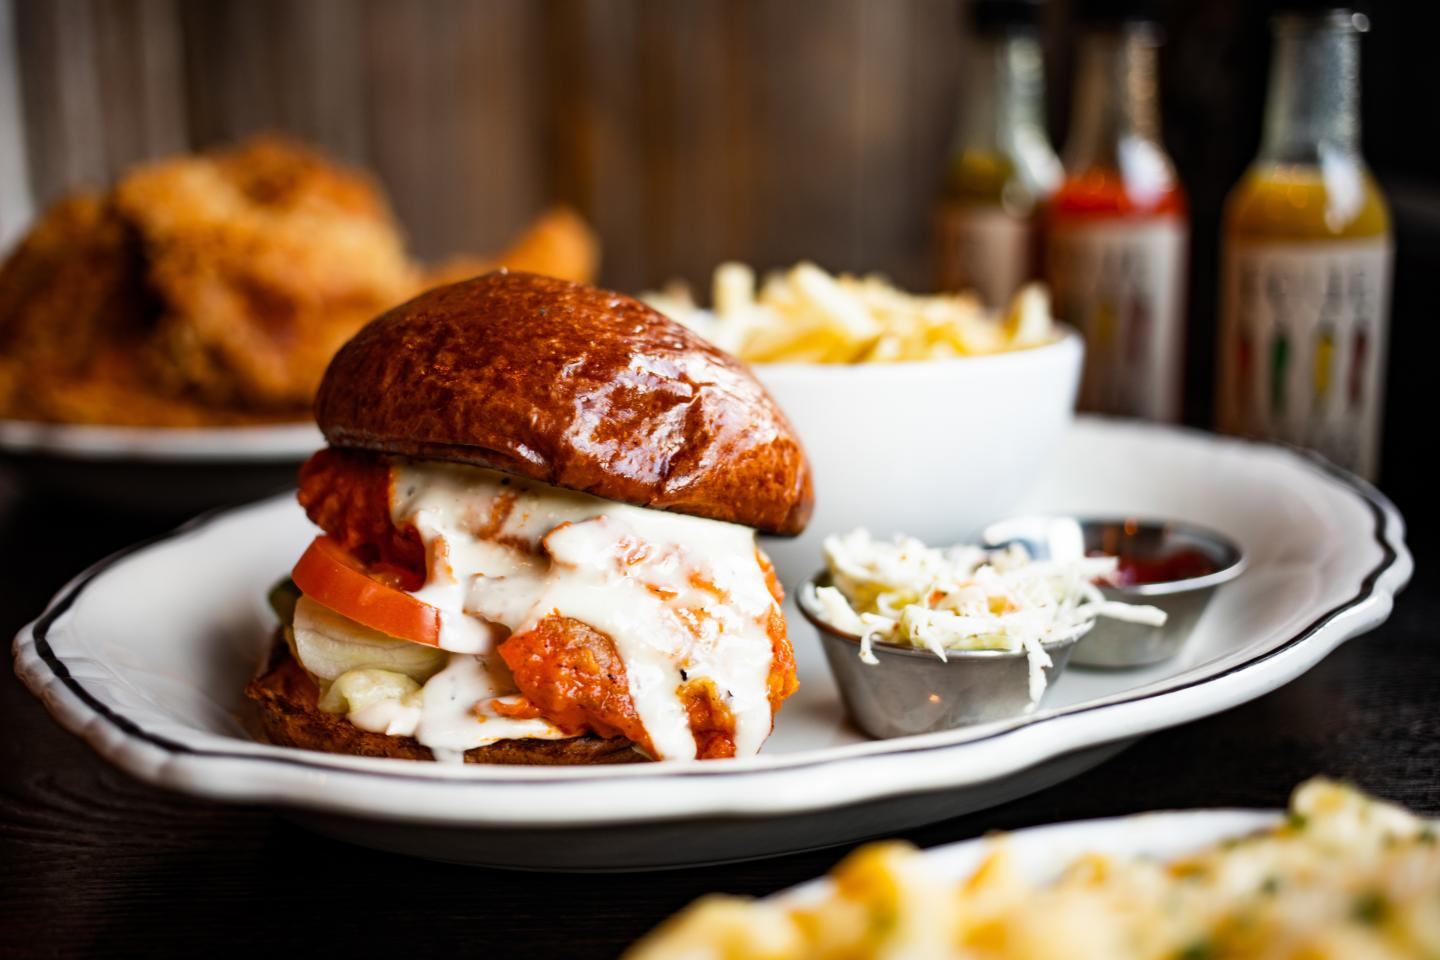 Seaside's Buffalo Chicken Sandwich